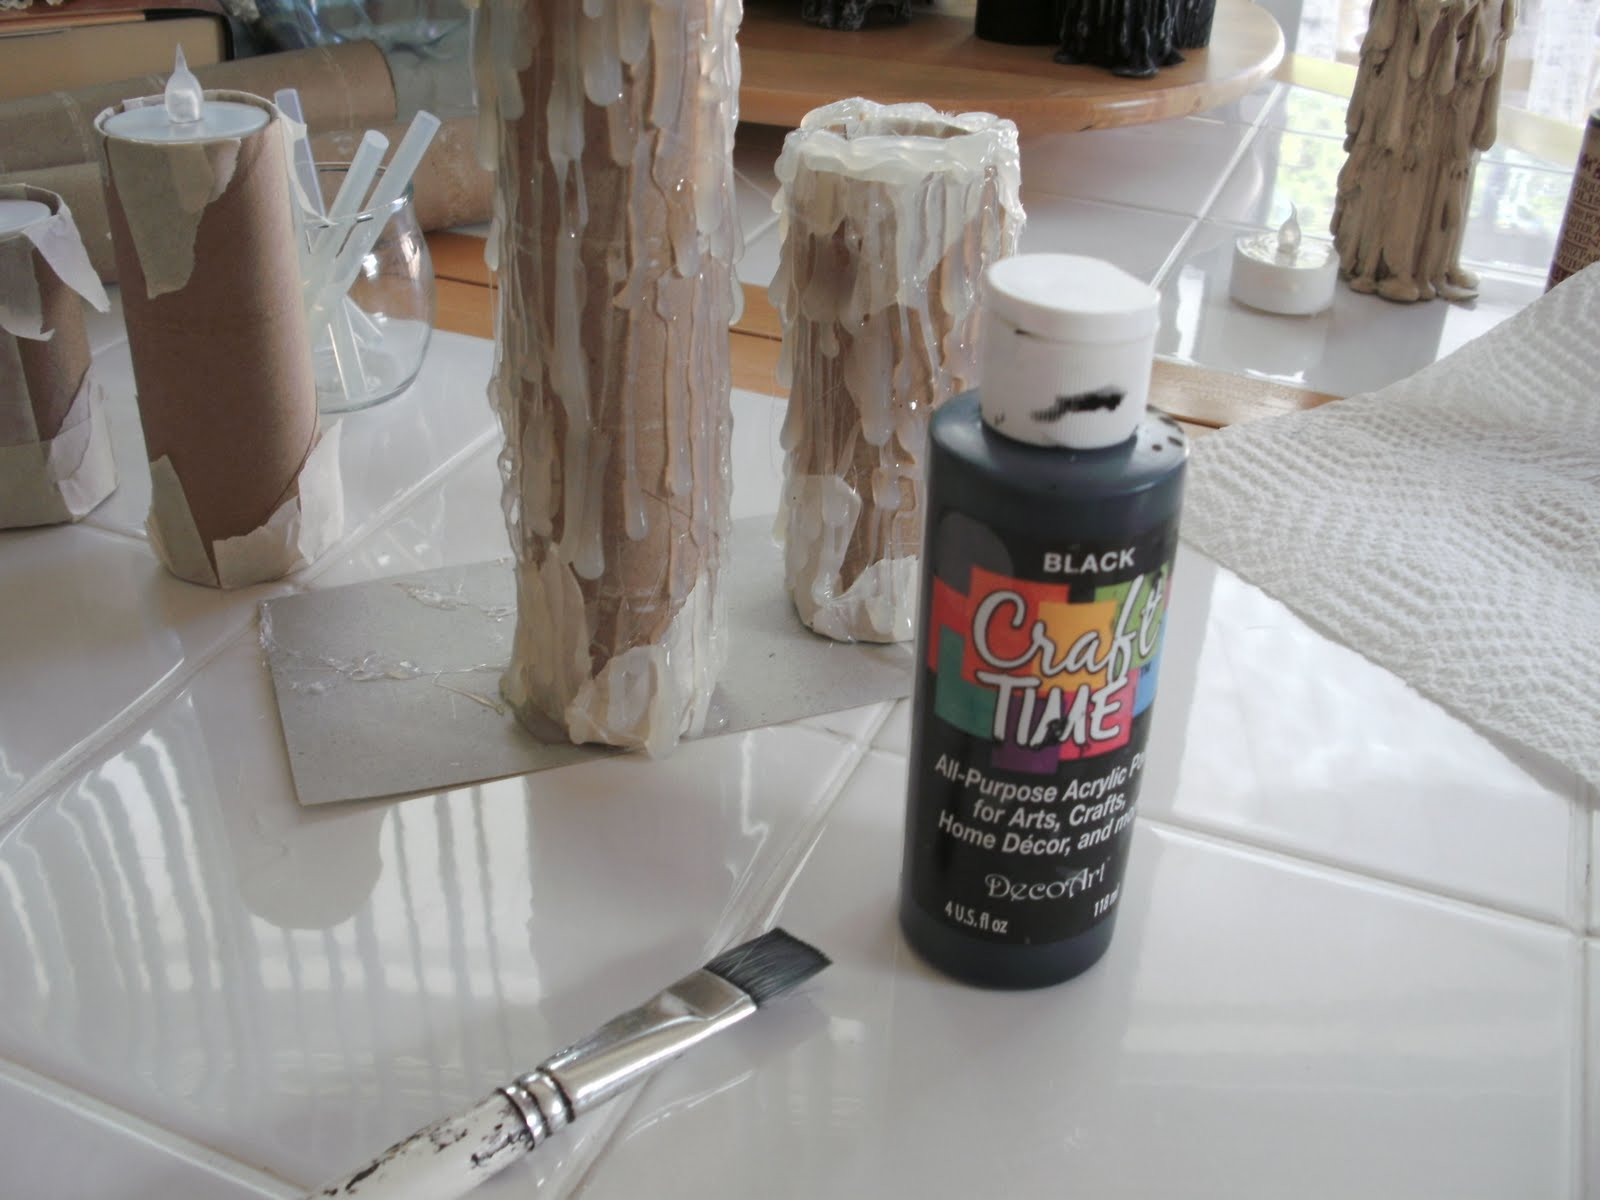 House of dewberry diy halloween paper towel roll and for Can you paint candles with acrylic paint